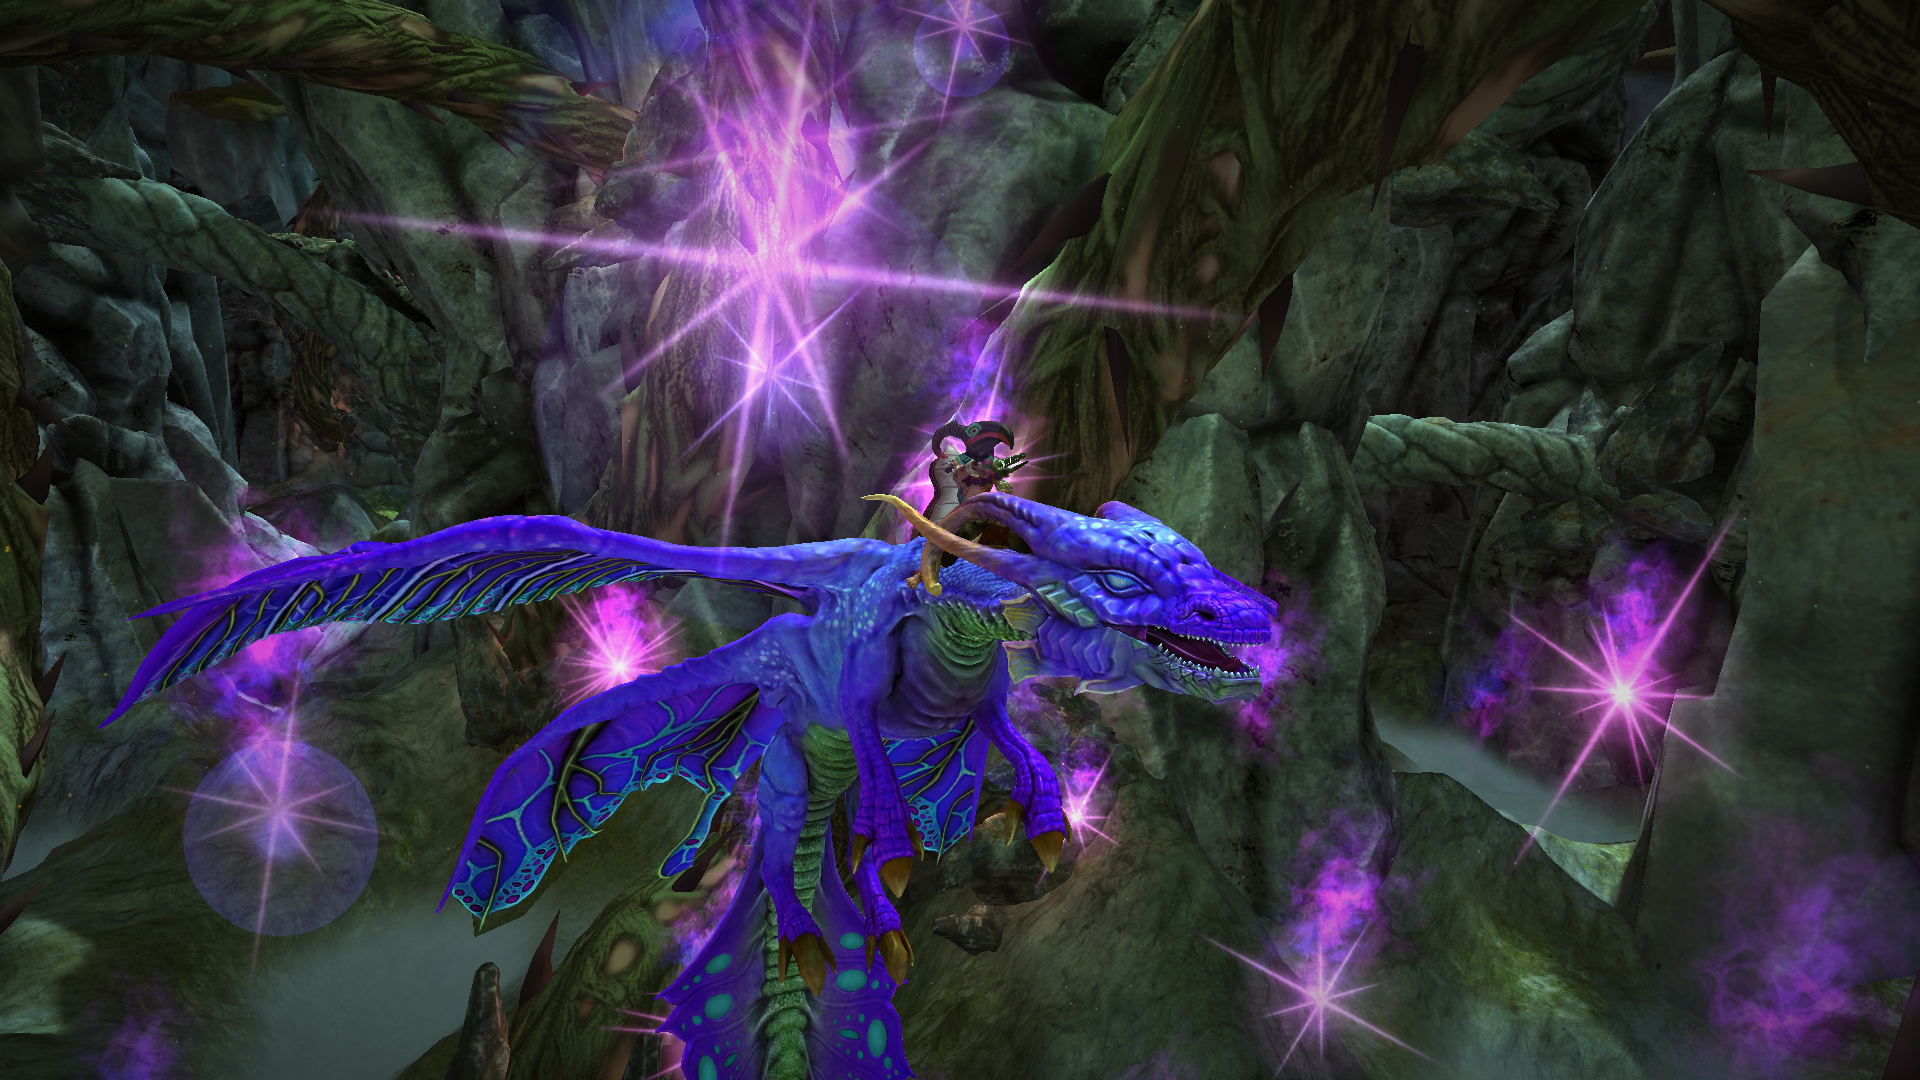 shaman riding the faerie dragon